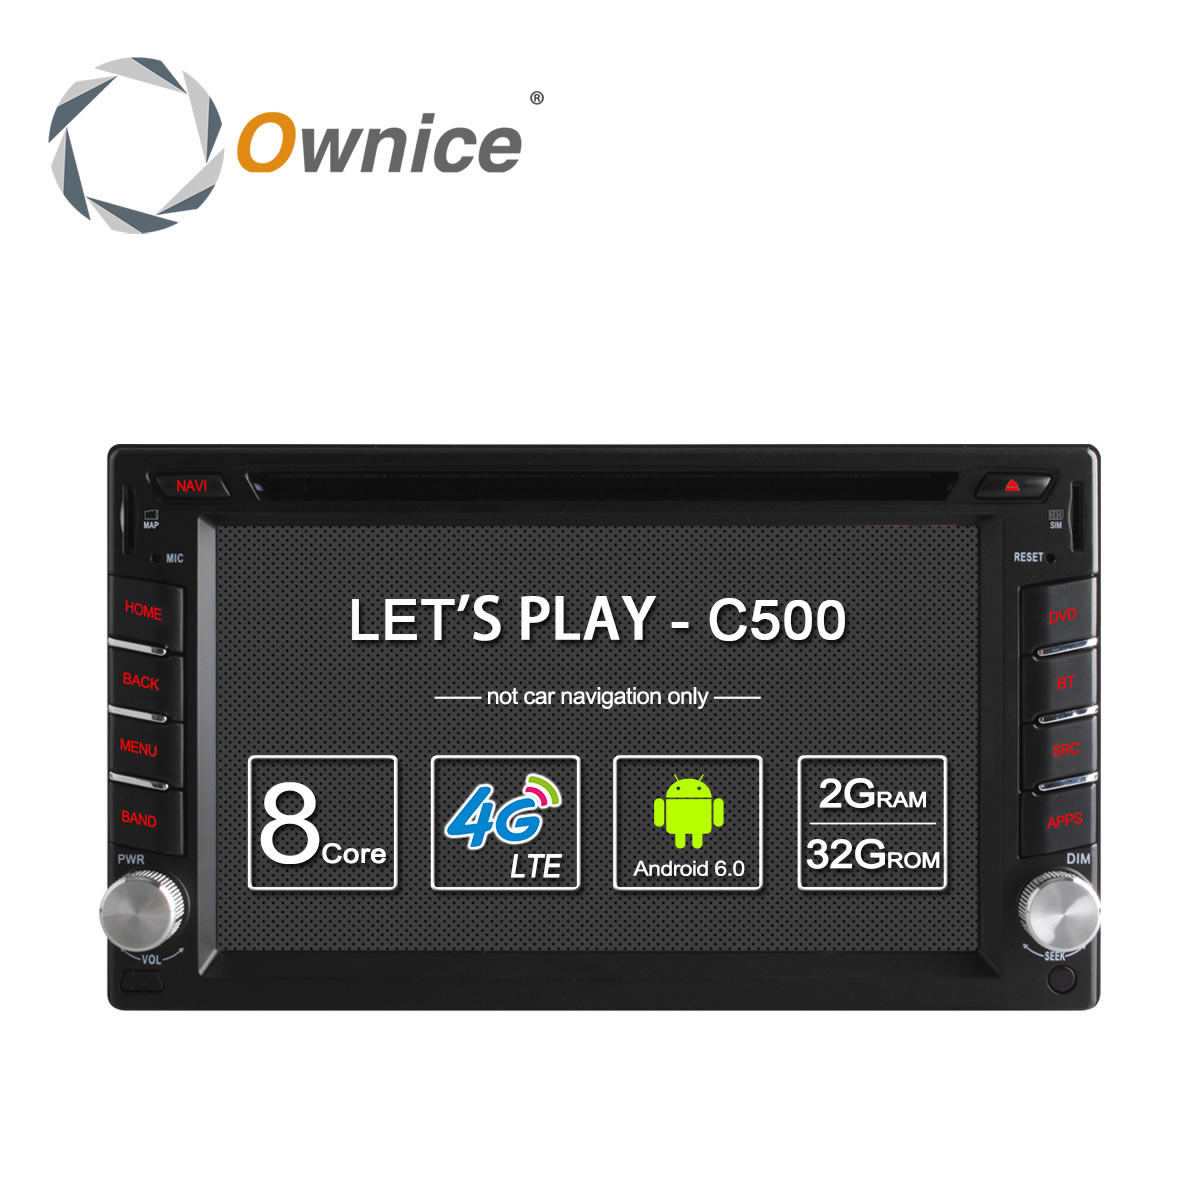 Ownice C500 Universal 2 Din Android 6 0 Quad Core Car DVD Player GPS Wifi Bluetooth